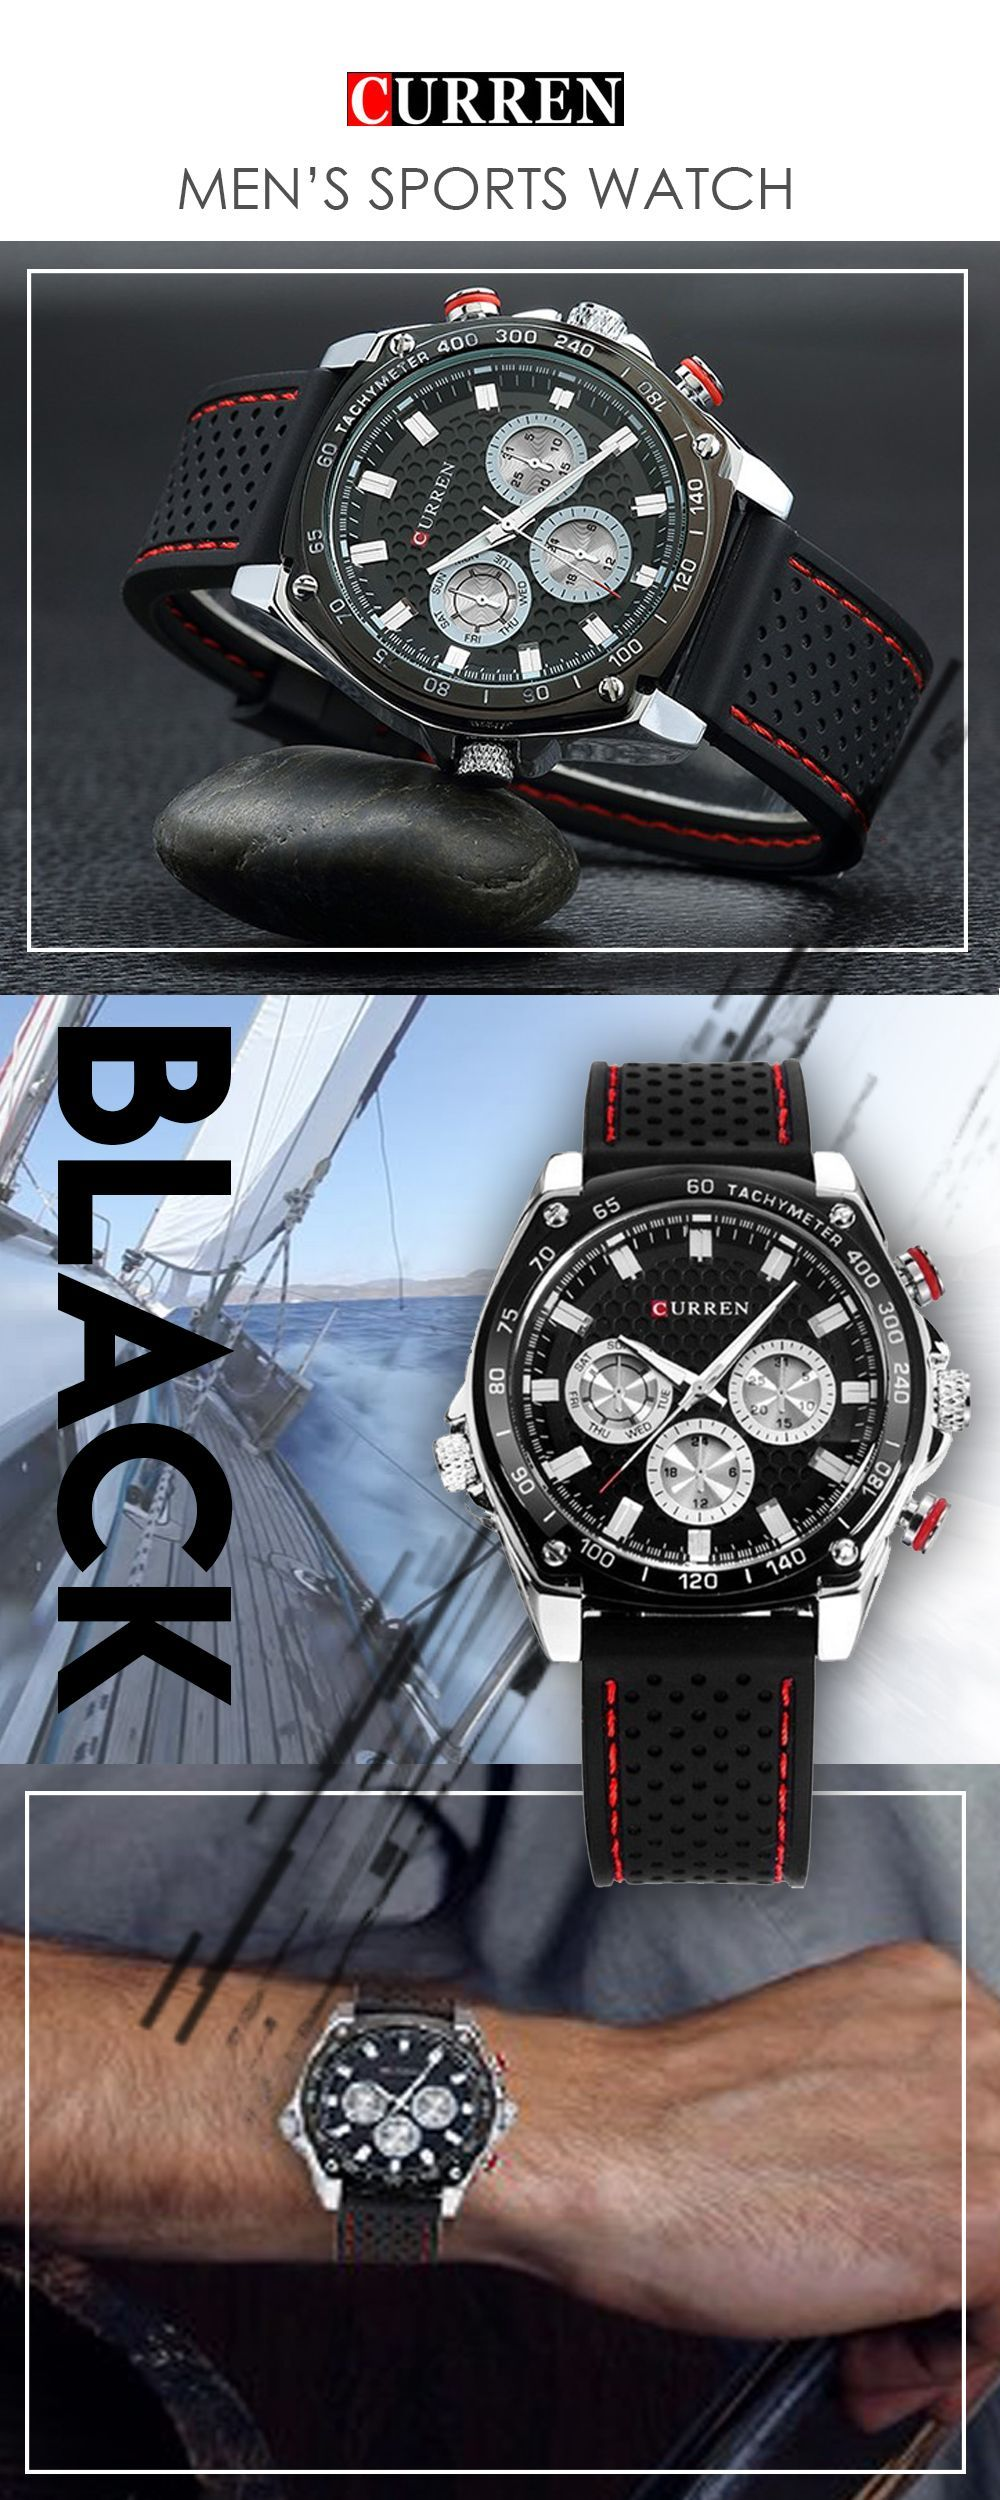 Watches Honest Weide Quartz Sport Water Resistant Watches Men Analog Clock Black Waterproof Stainless Steel Watch Olar Energy Movement Date Up-To-Date Styling